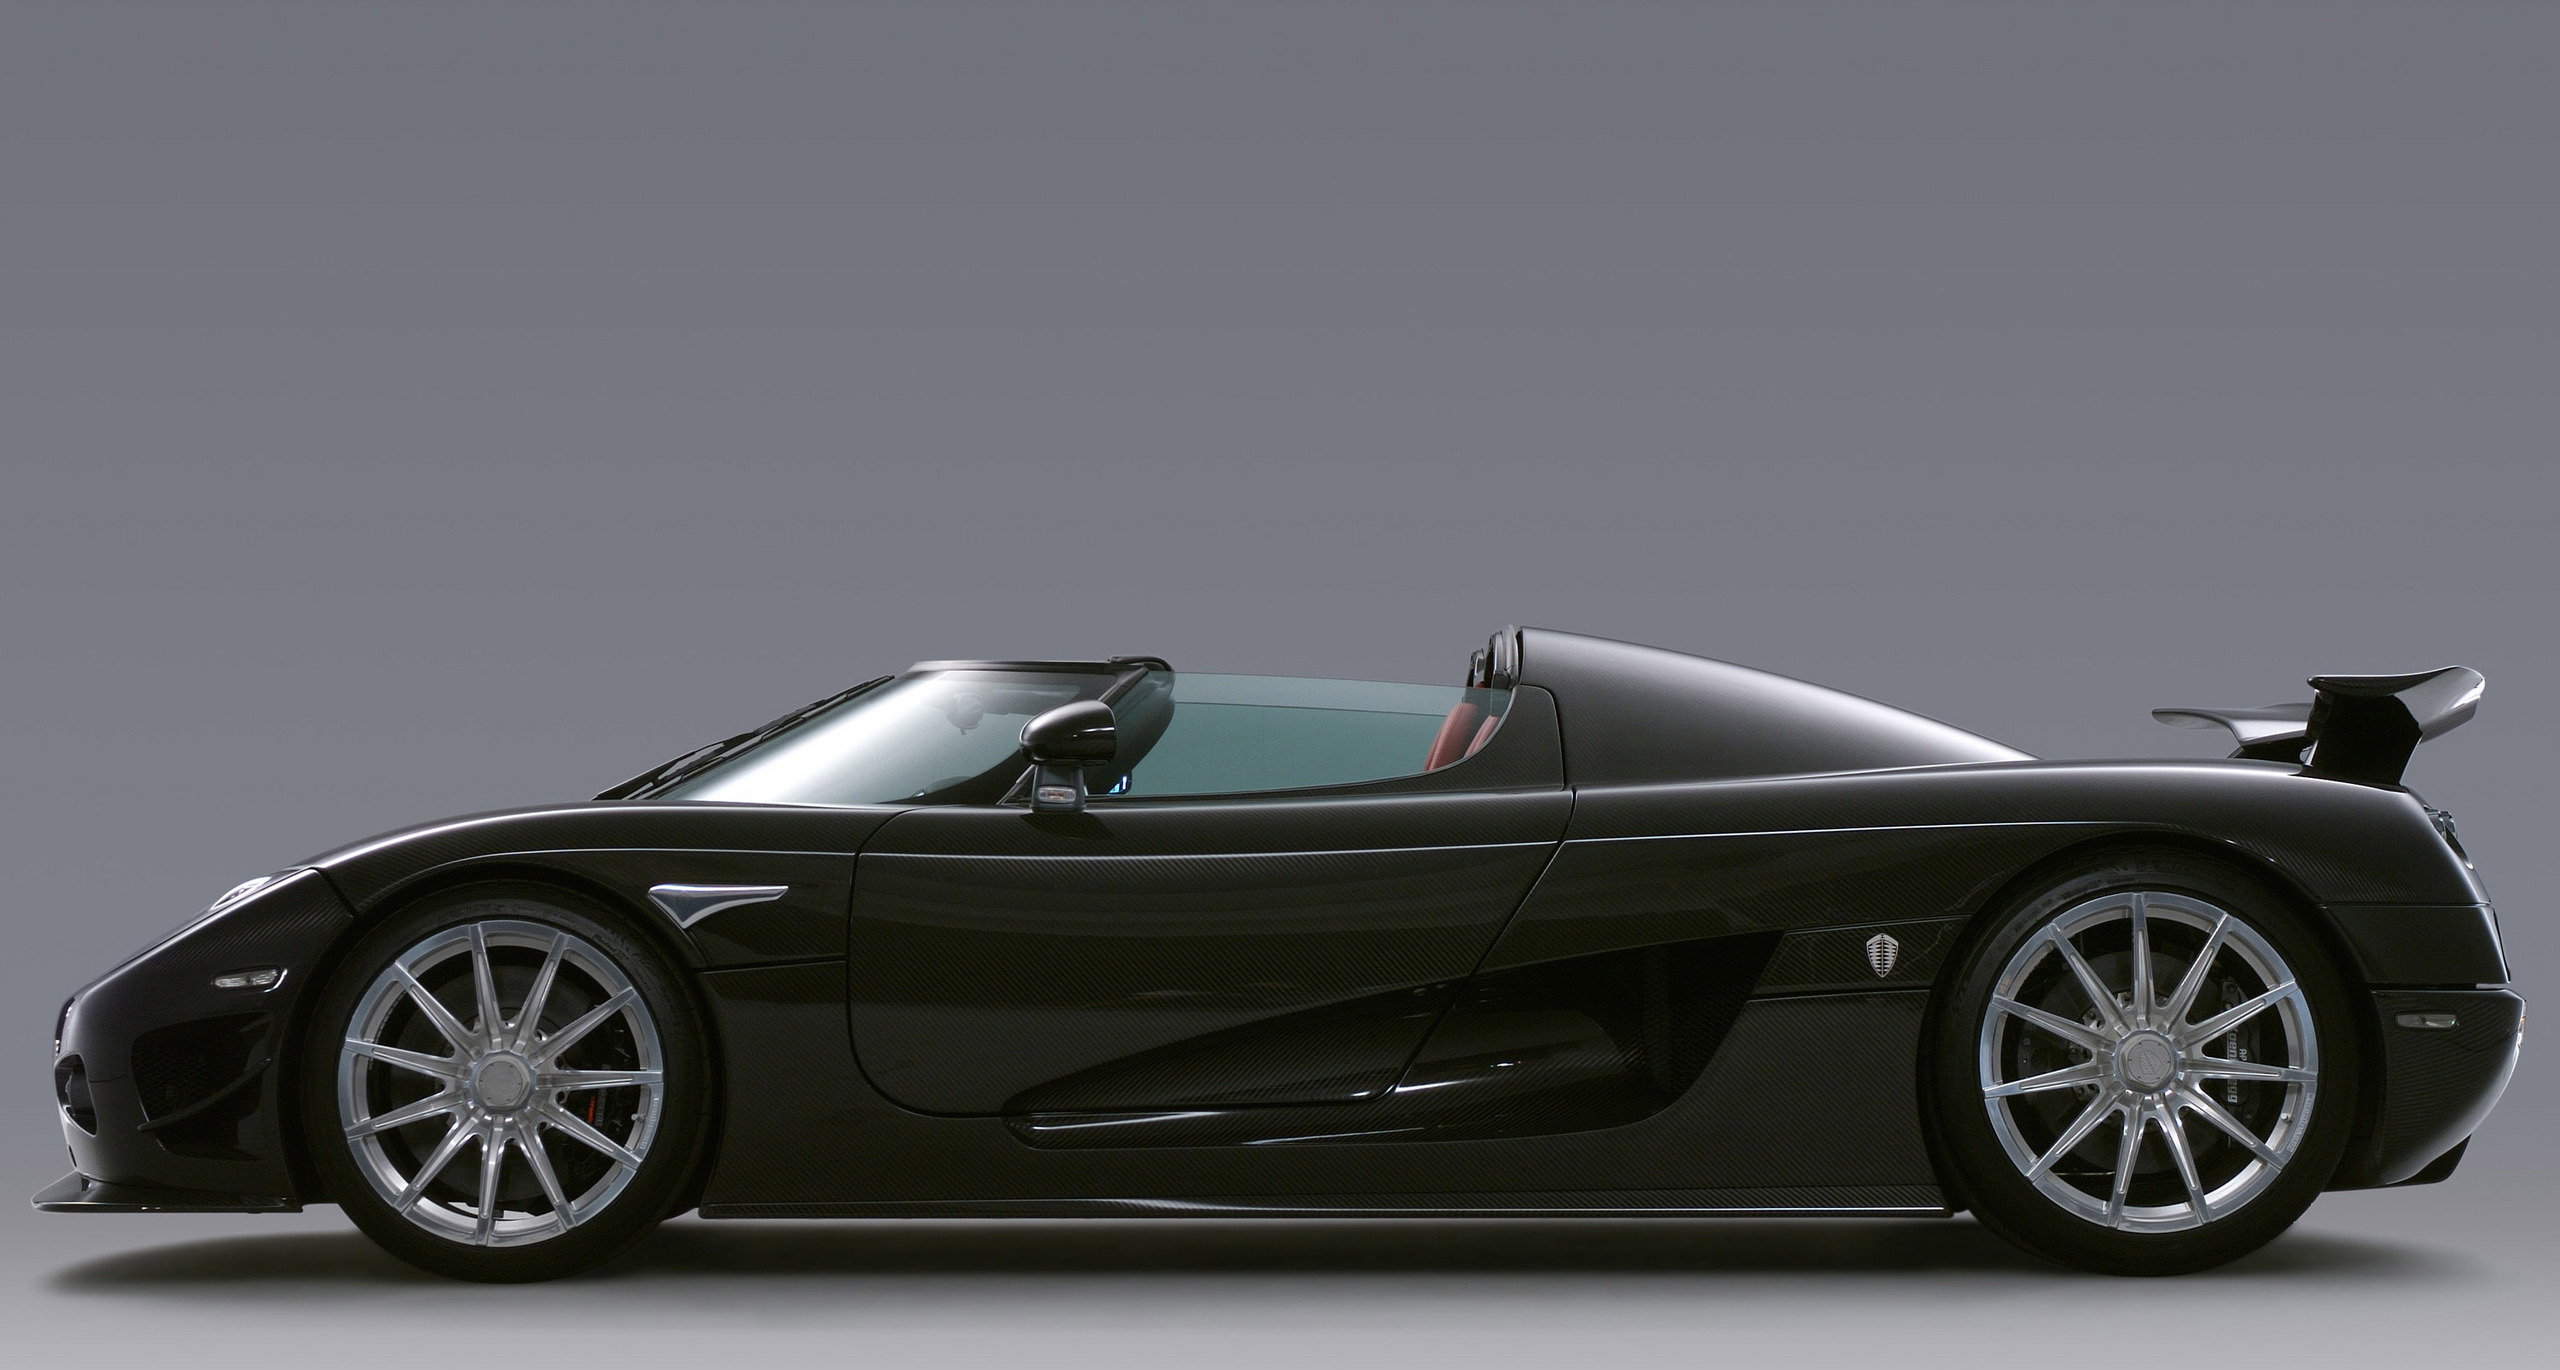 Exotic Cars images Koenigsegg CCXR HD wallpaper and background ...